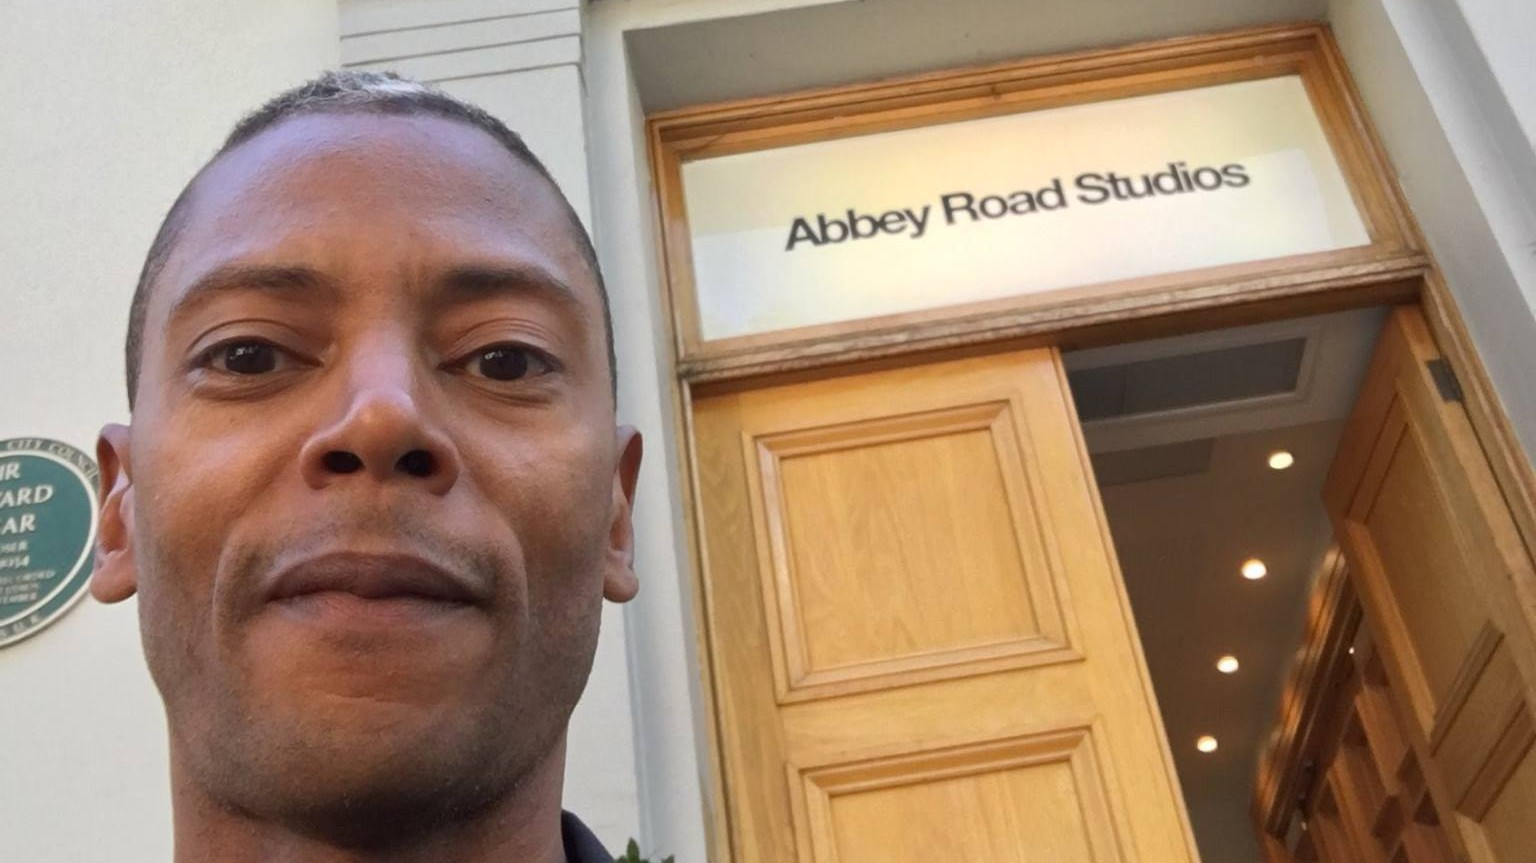 Jeff Mills Is at Abbey Road Studios Putting the Finishing Touches on His New Album